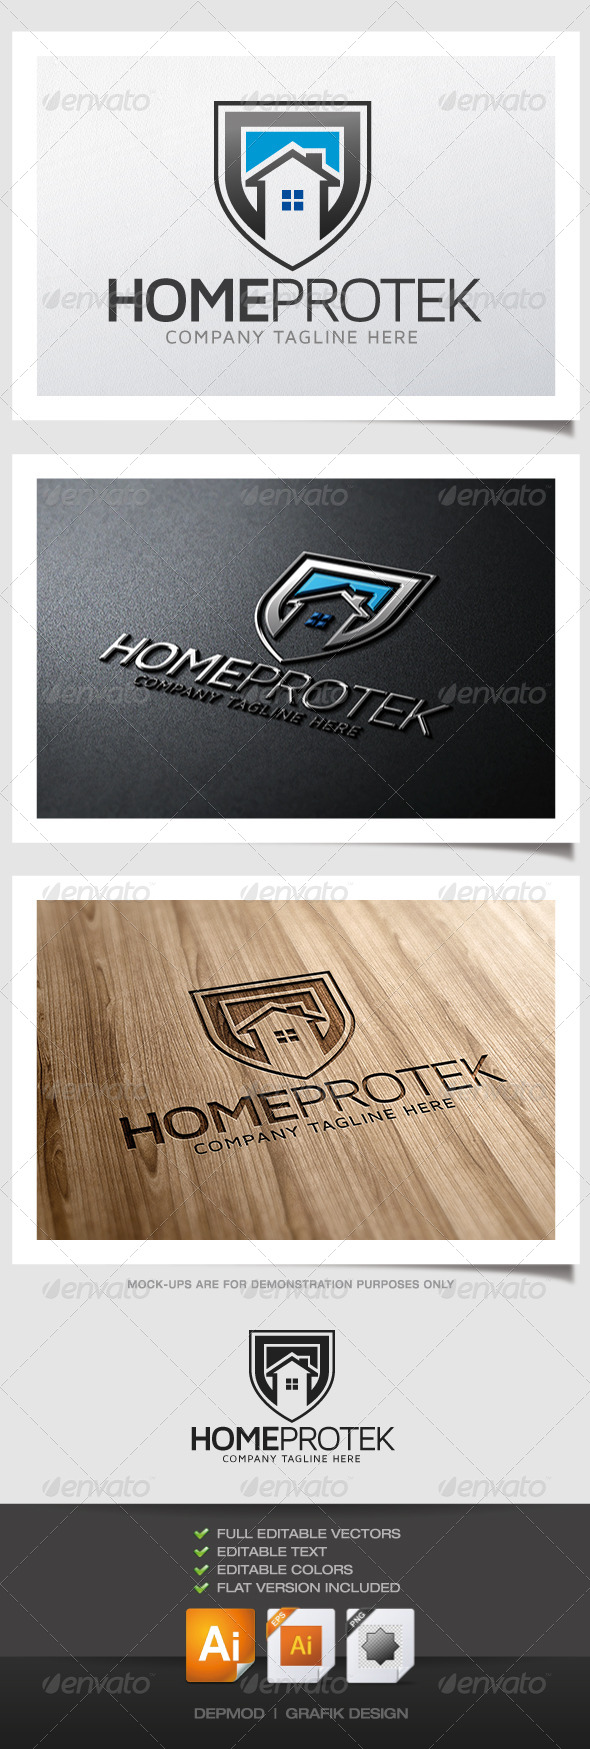 Home Protek Logo - Buildings Logo Templates